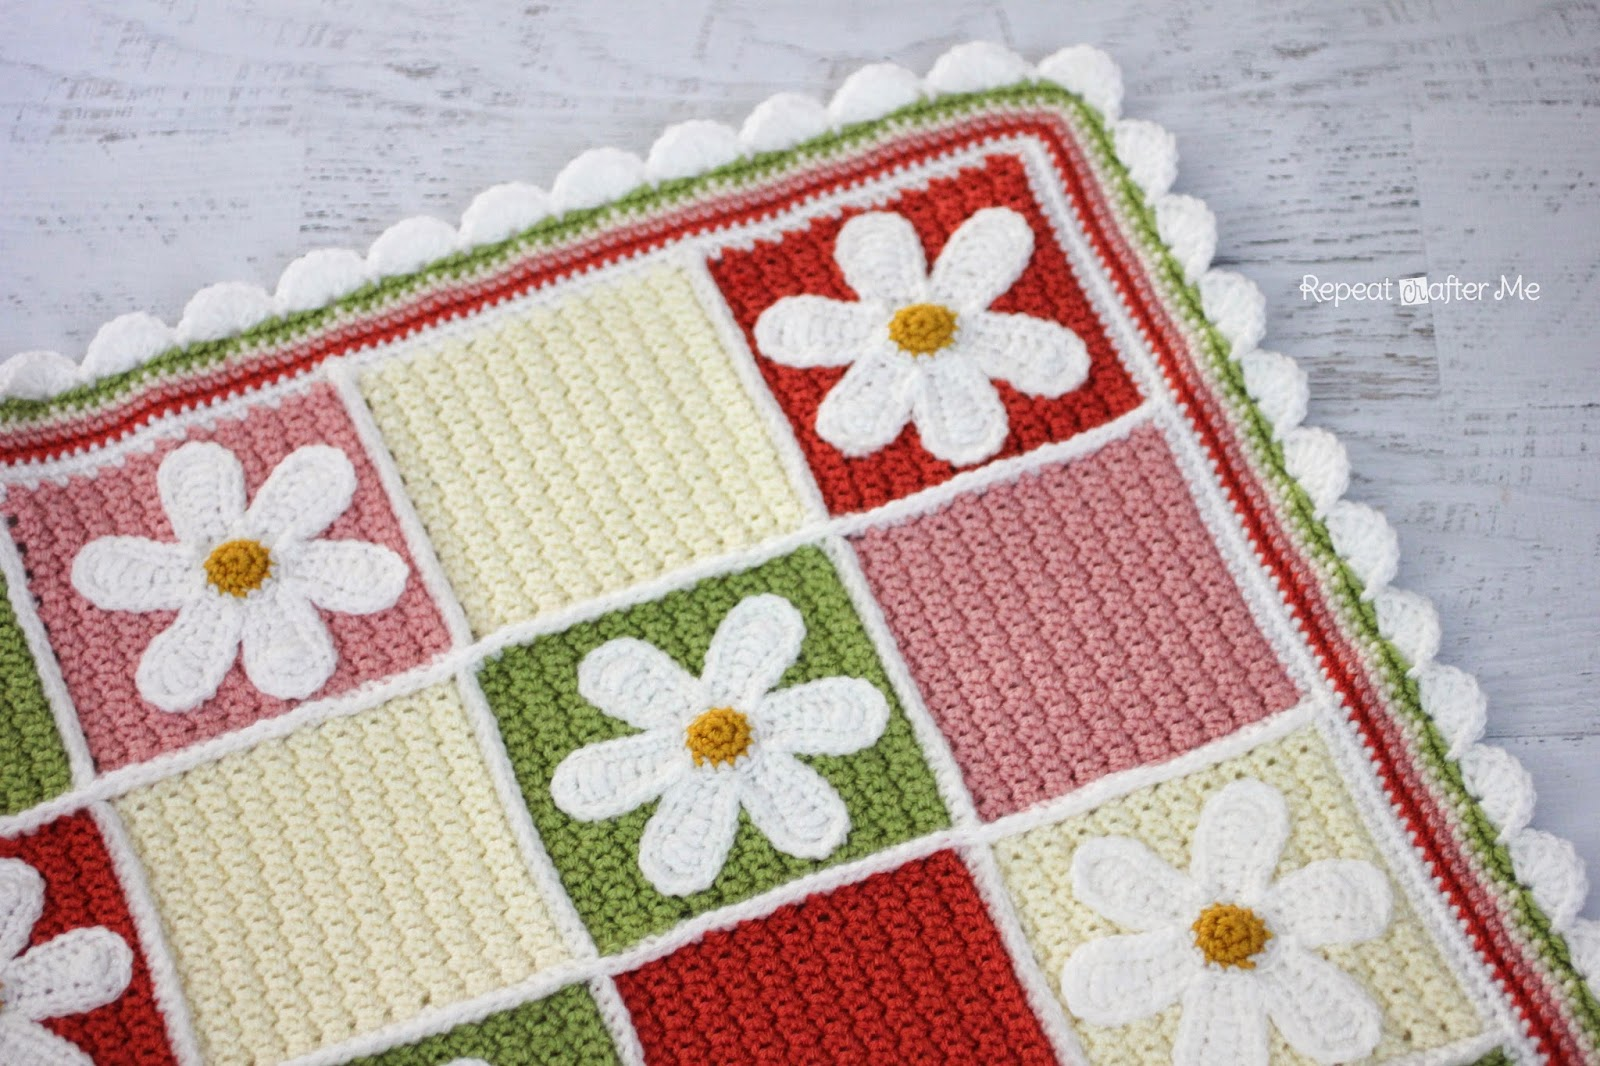 Free Crochet Pattern For Daisy Blanket : Crochet Daisy Afghan - Repeat Crafter Me